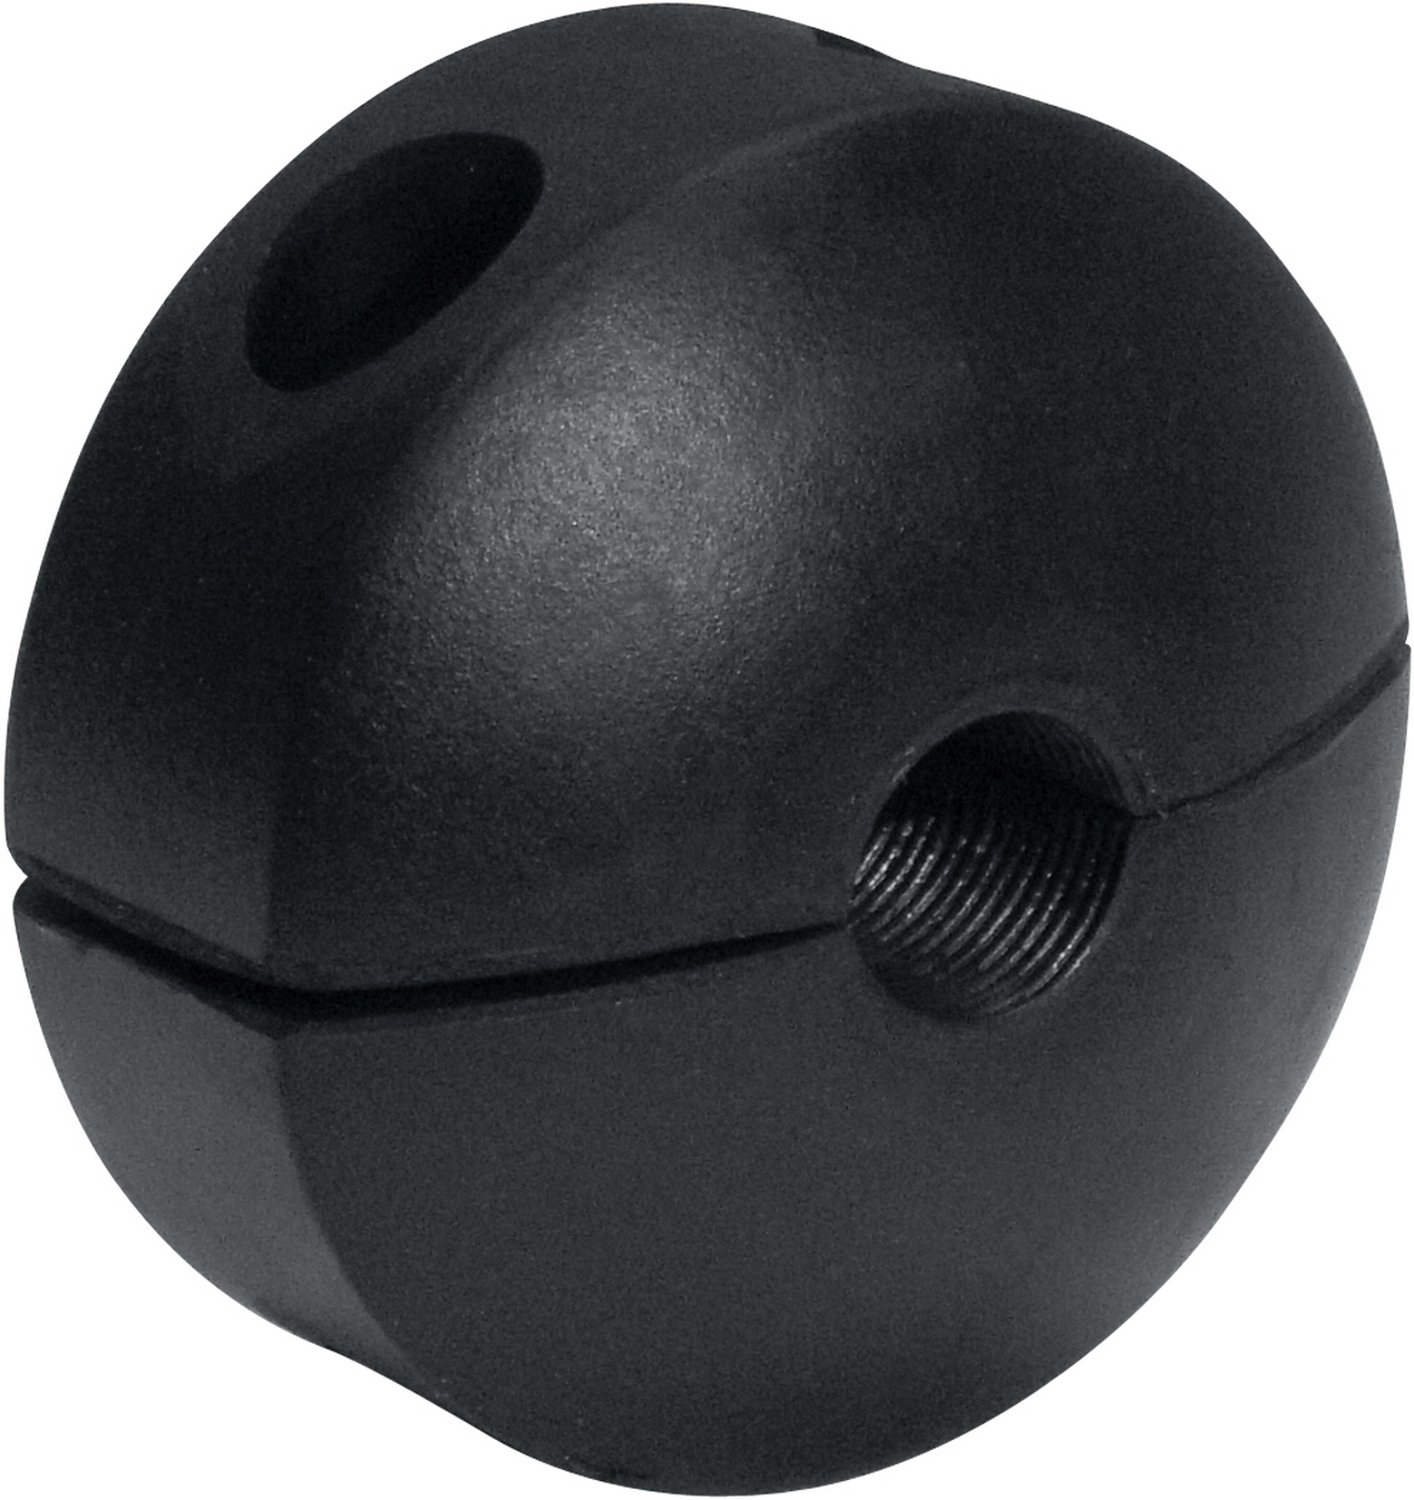 """Coxreels 131 Ball Stop for Spring Driven Reel, fits 1/4"""" Hose, 1/2"""